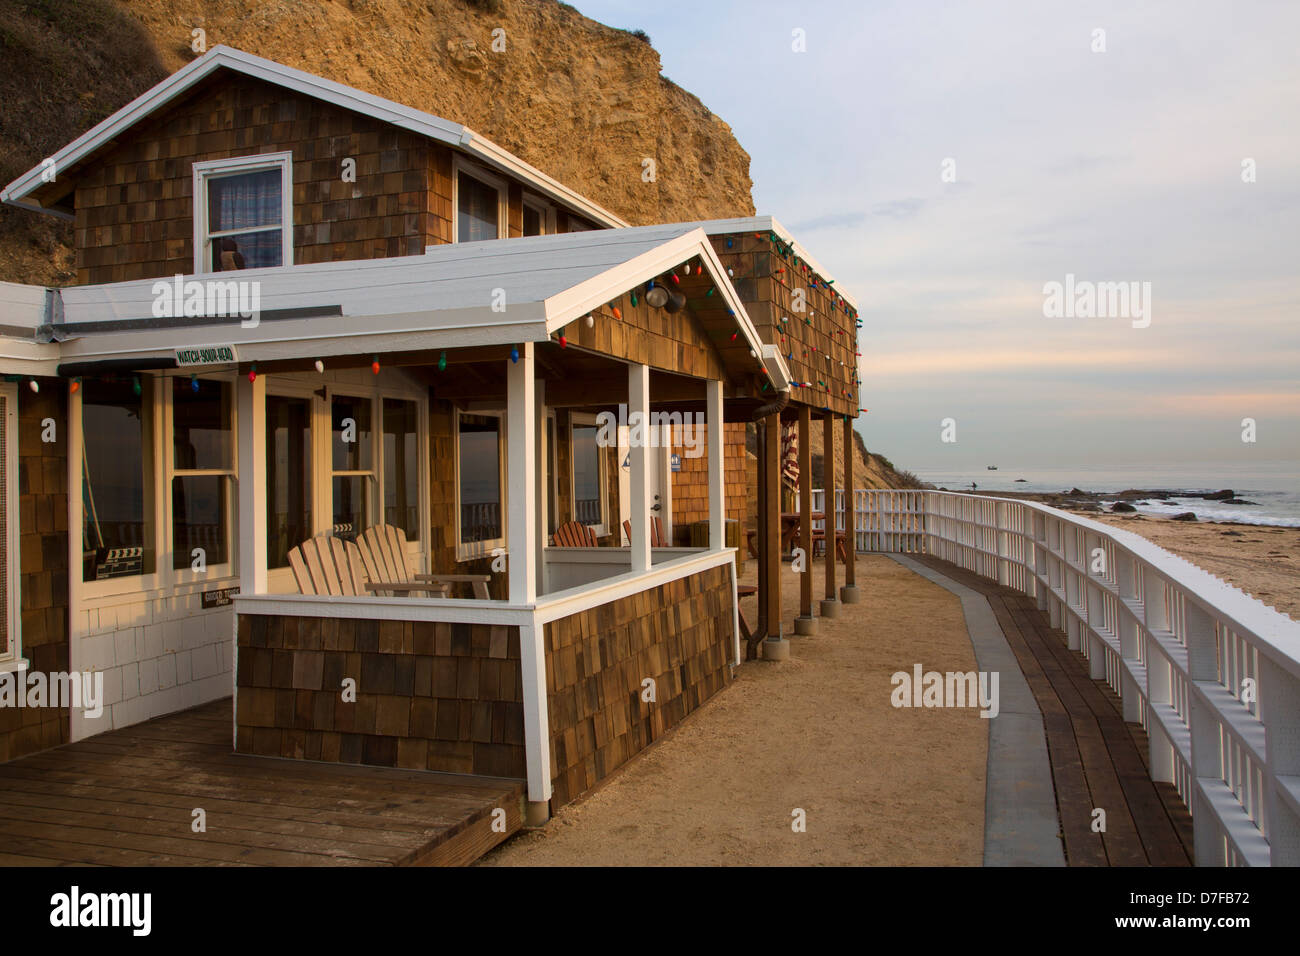 Crystal Cove Beach Cottages, Crystal Cove State Park, Newport Beach, Orange County, California. - Stock Image